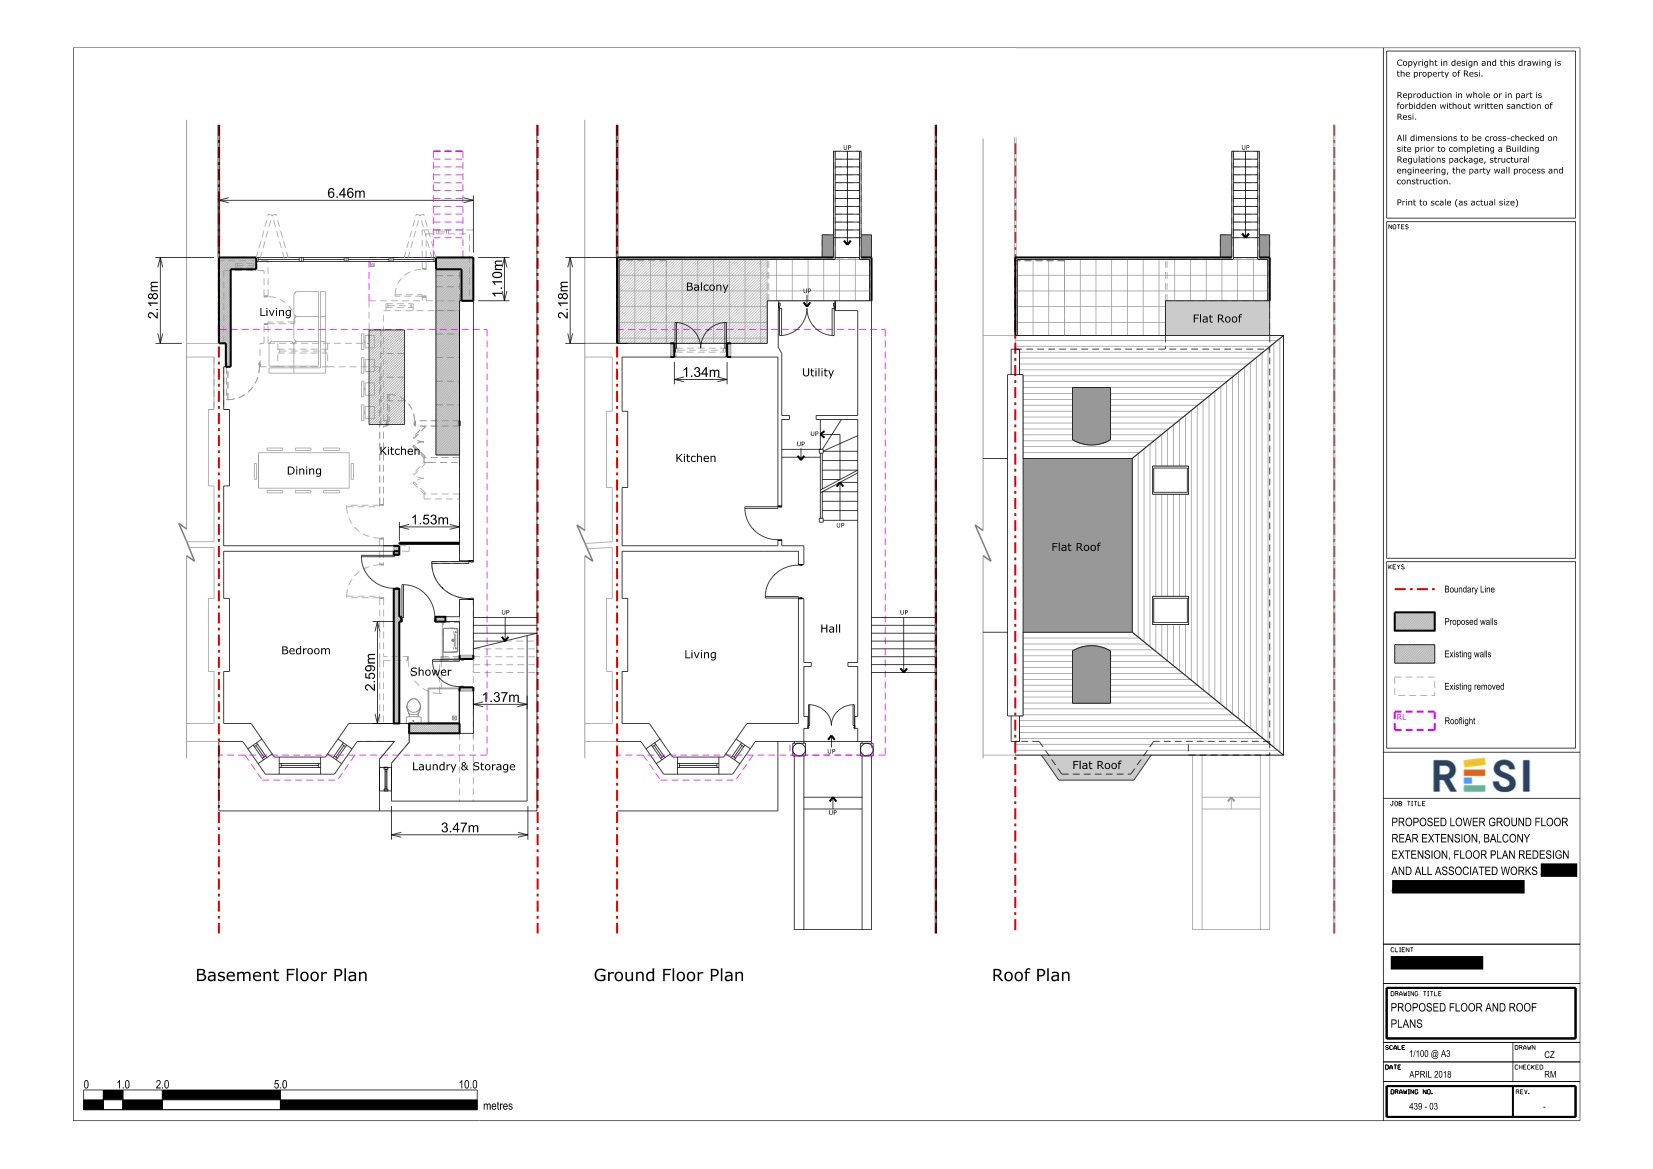 Architectural drawings 31   basement and ground floor plans